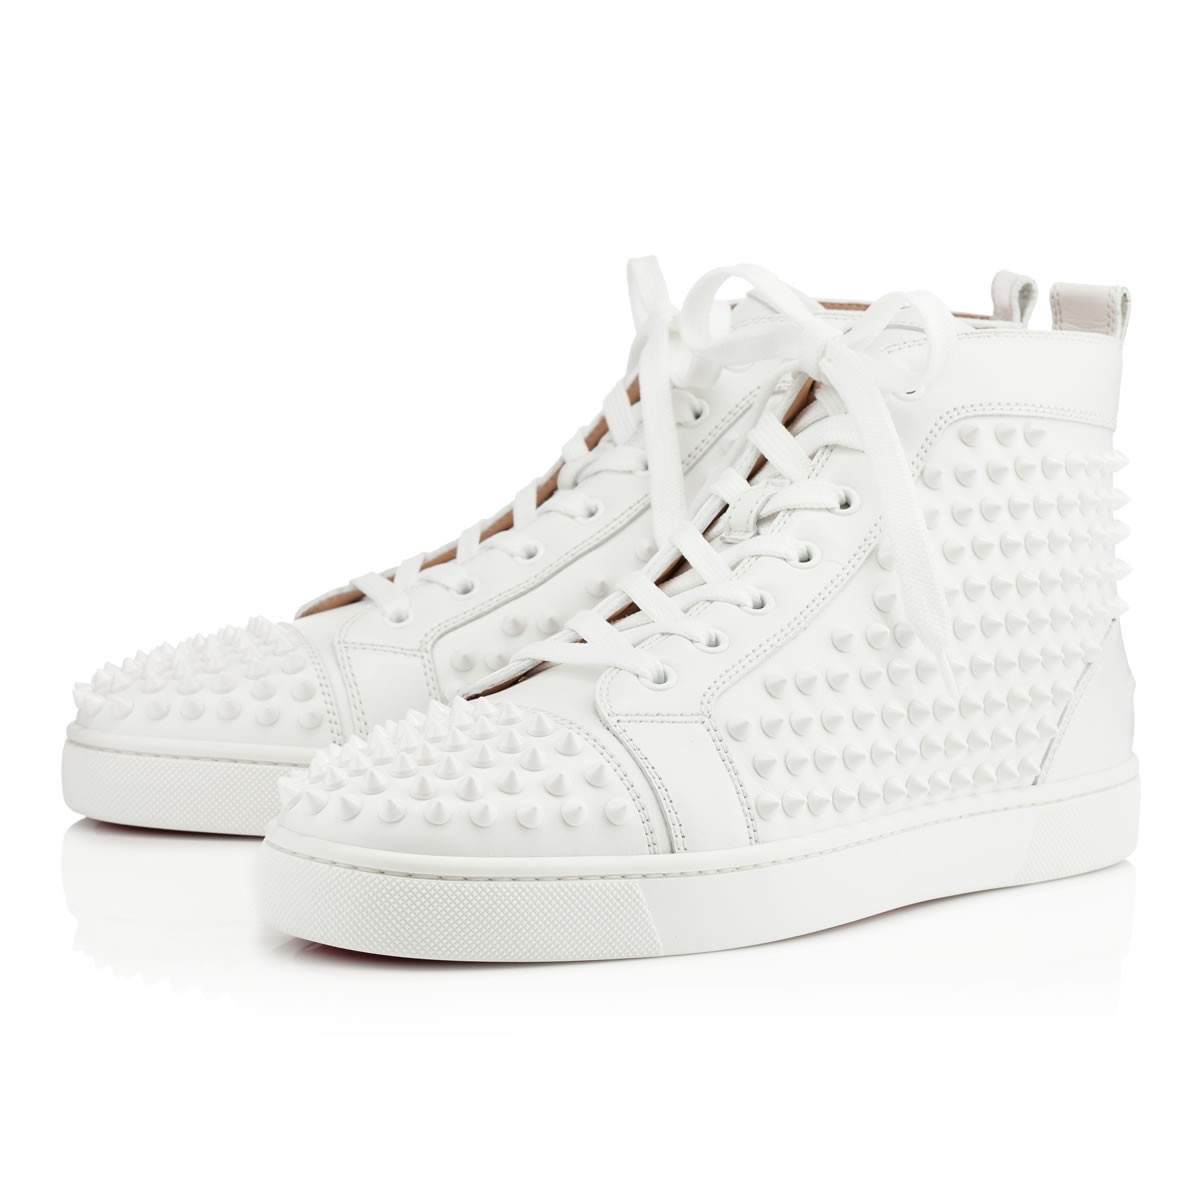 37787028480a Louis Spikes Men s Flat White White Leather - Men Shoes - Christian  Louboutin